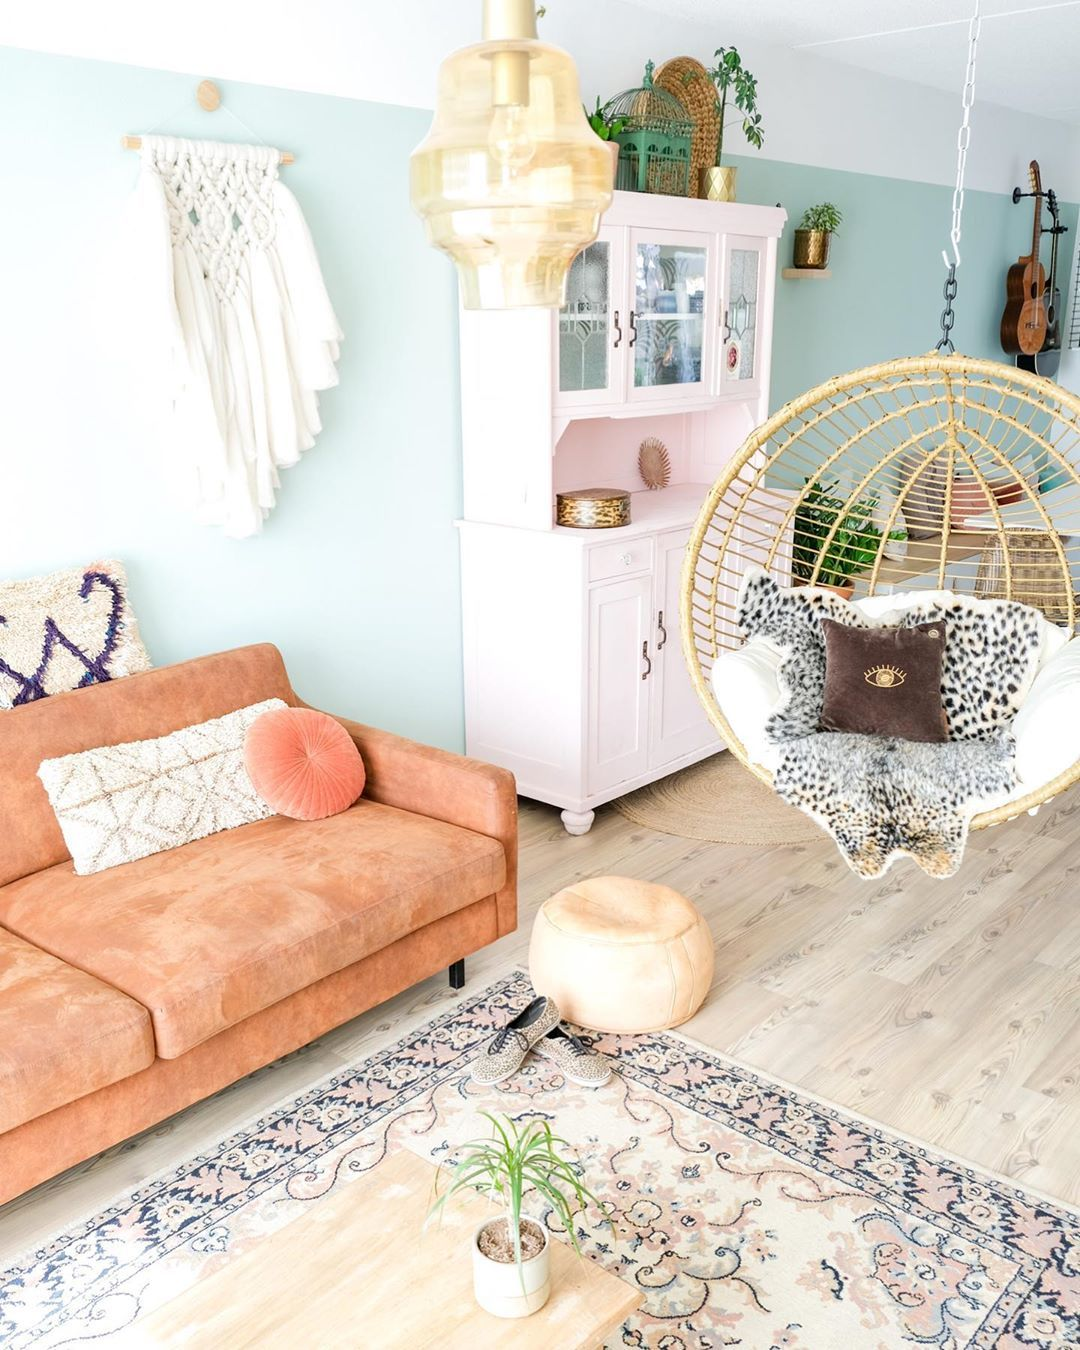 Hangstoel Standaard Tweedehands.Need A Place To Chill Hangstoel Livingroom Pastel Bohemian